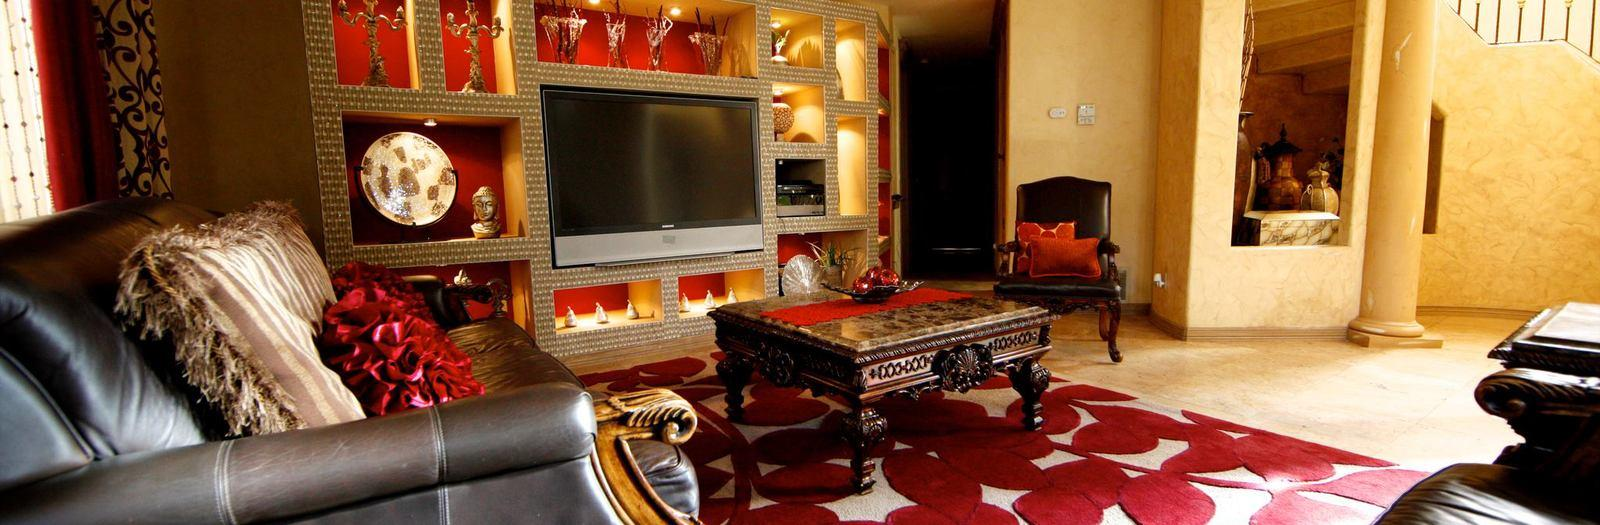 Modern Family Room with modern entertainment center